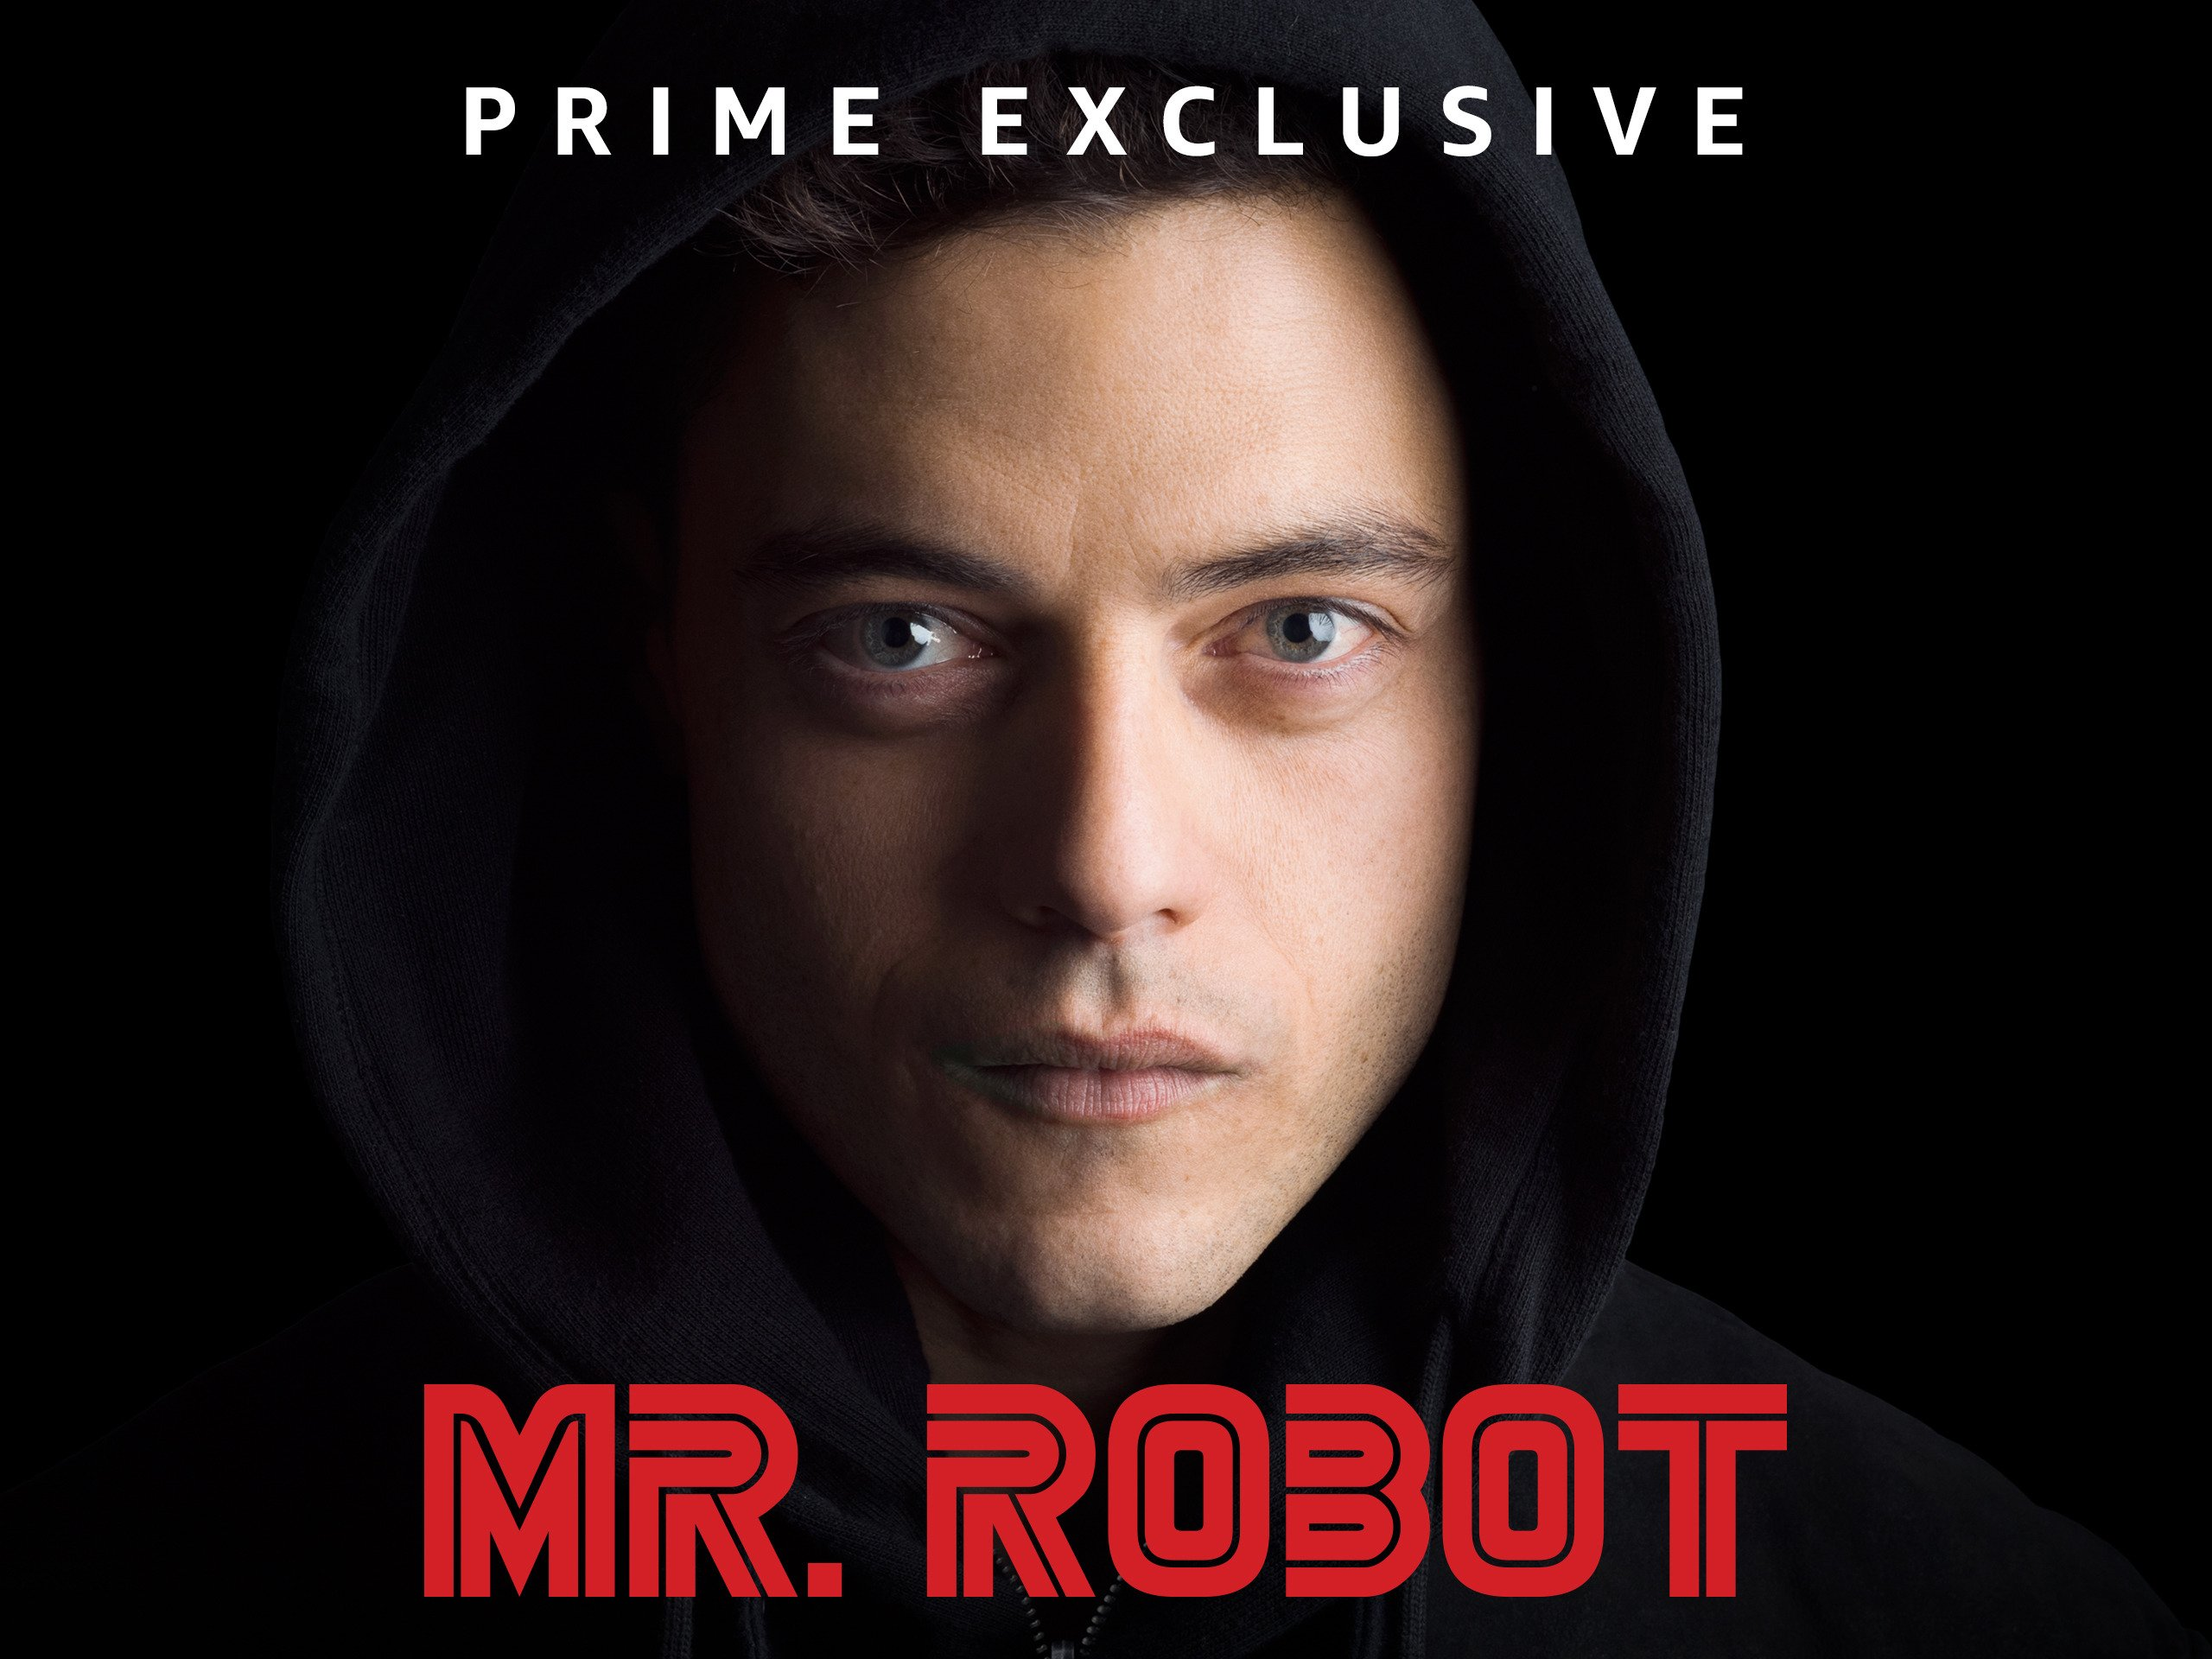 mr robot season 2 hd torrent